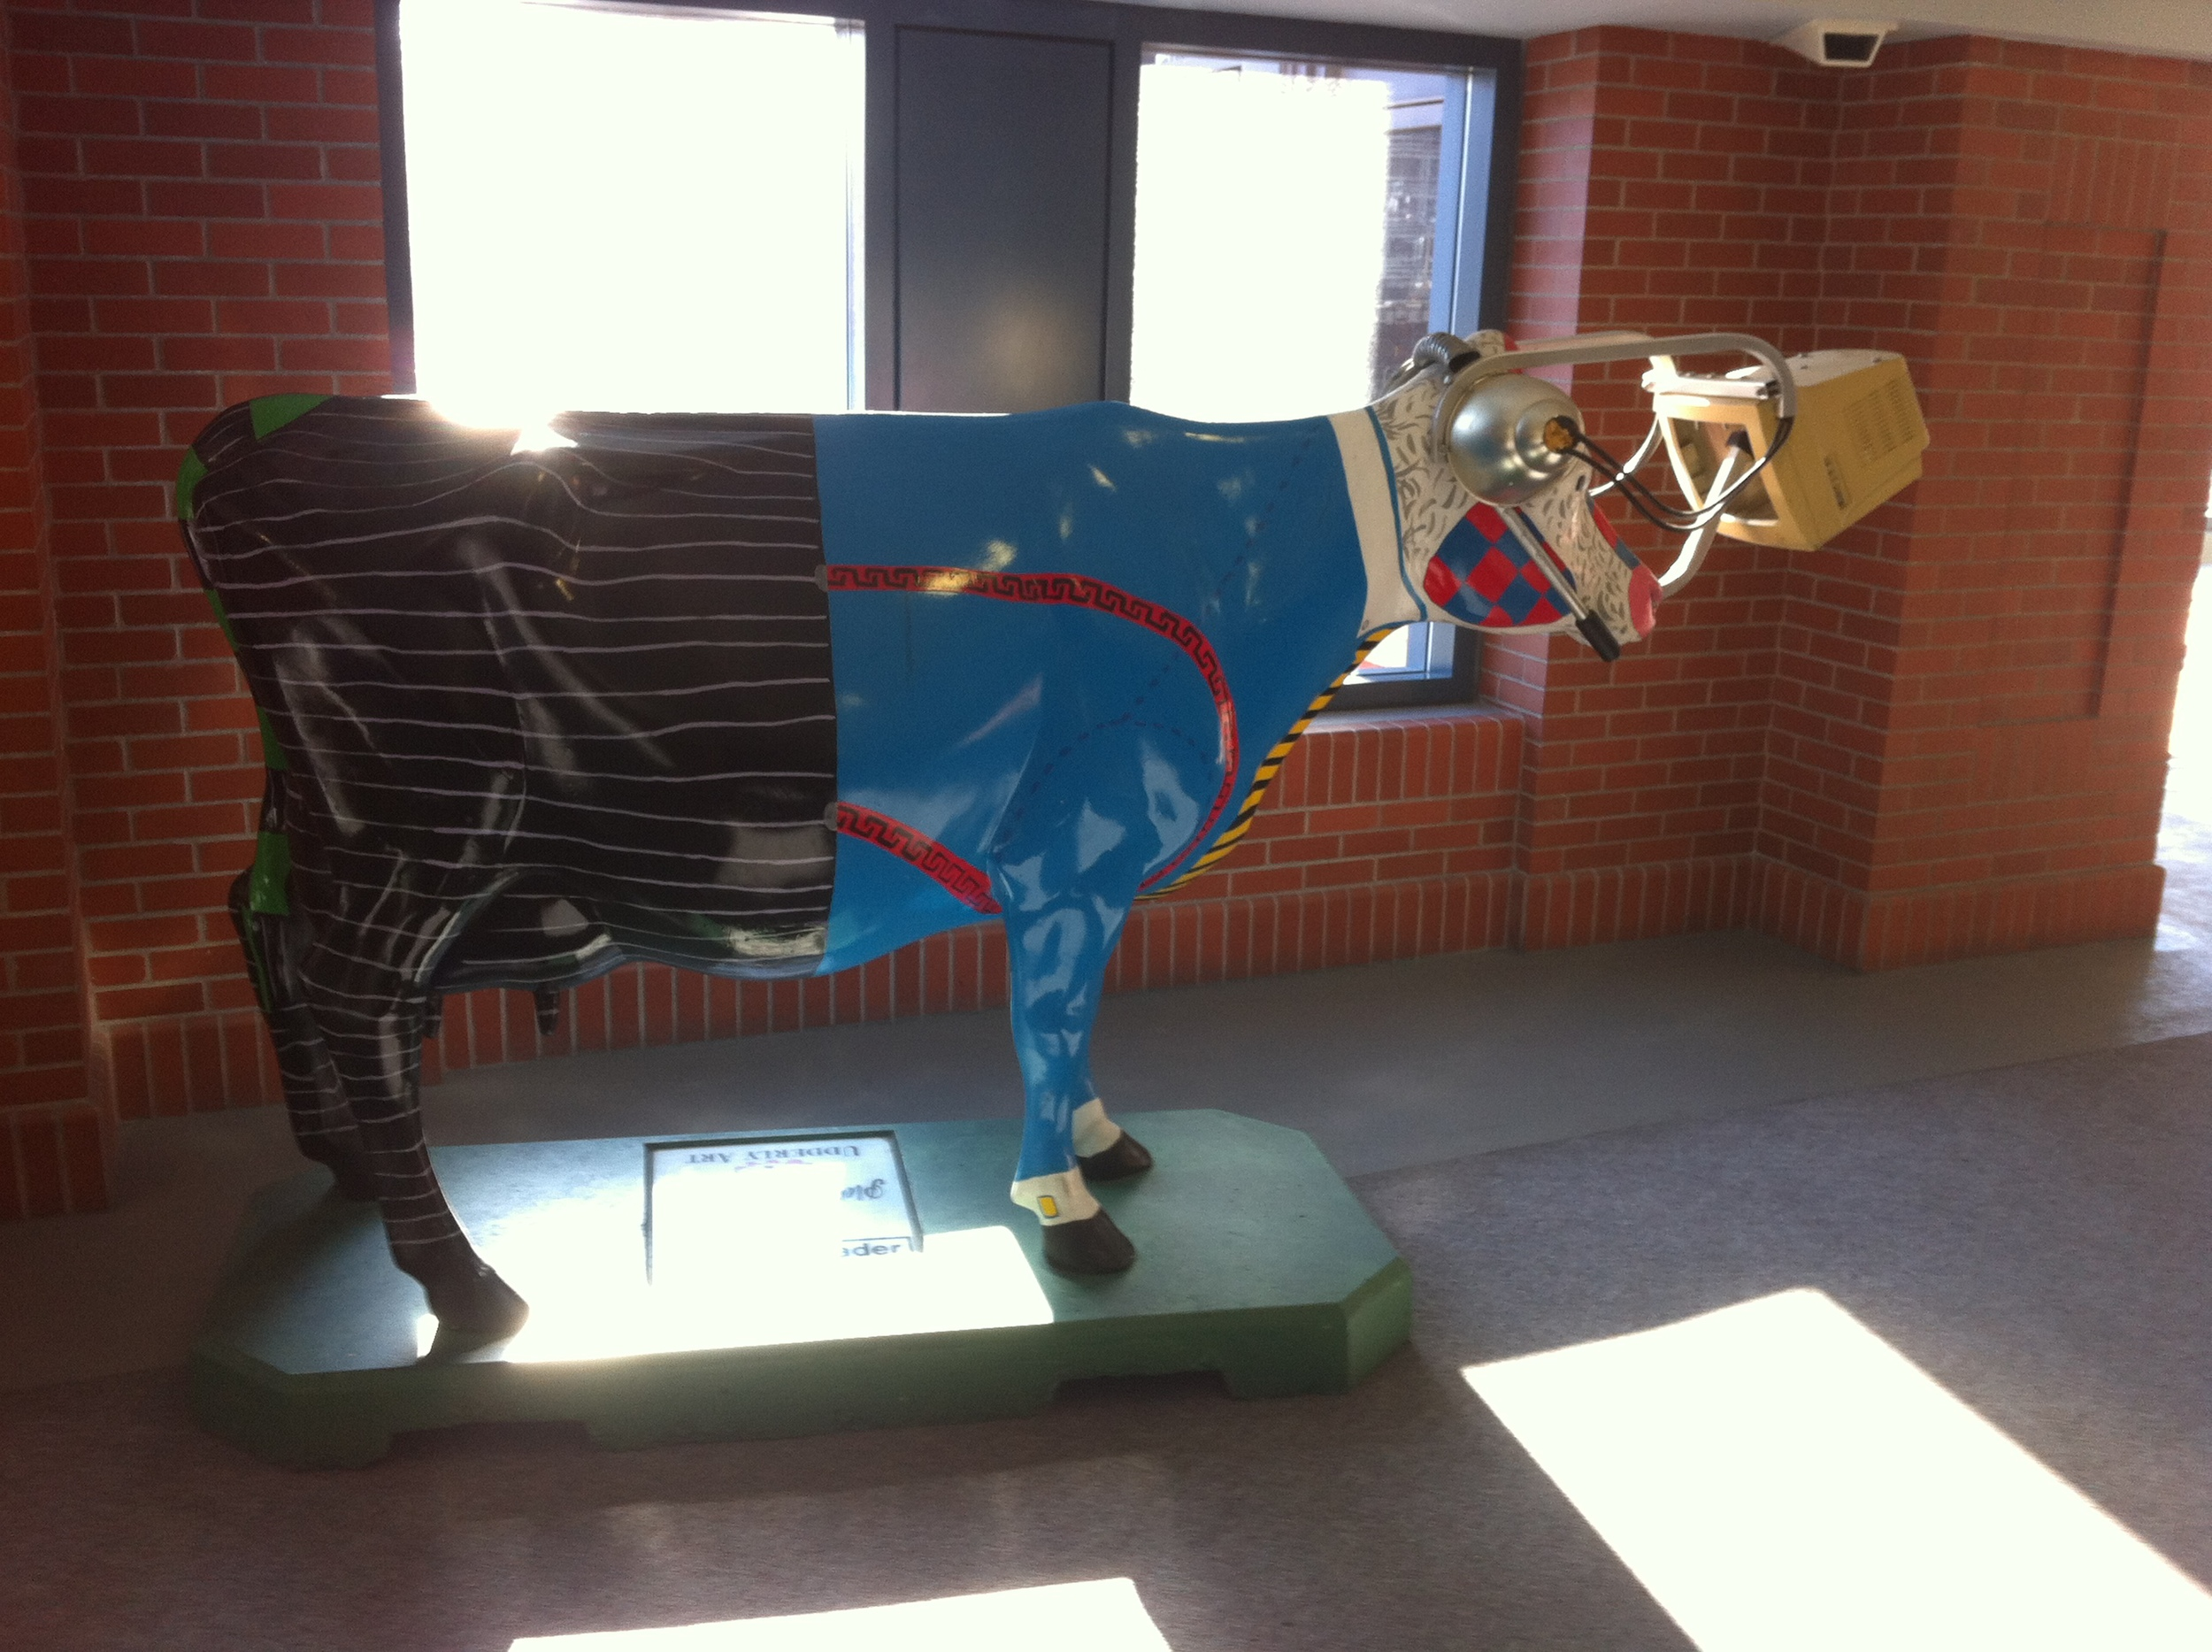 Moony Trader is one of the first cows you encounter. Damien Manchuk from ACAD was the artist, the piece was commissioned by Hugh McGillvary of CIBC Wood Gundy who had an idea to dress up a cow as a stock-trading pit trader. Hugh took Damien to men's clothing store to see what well-dress cows were wearing in 2000 and let his imagination go to work. The result was a pin-stripped hind quarters, a bright yellow striped power tie and the now antique looking computer strapped to his nose so he could keep up with the TSE quotes 24 hours a day.